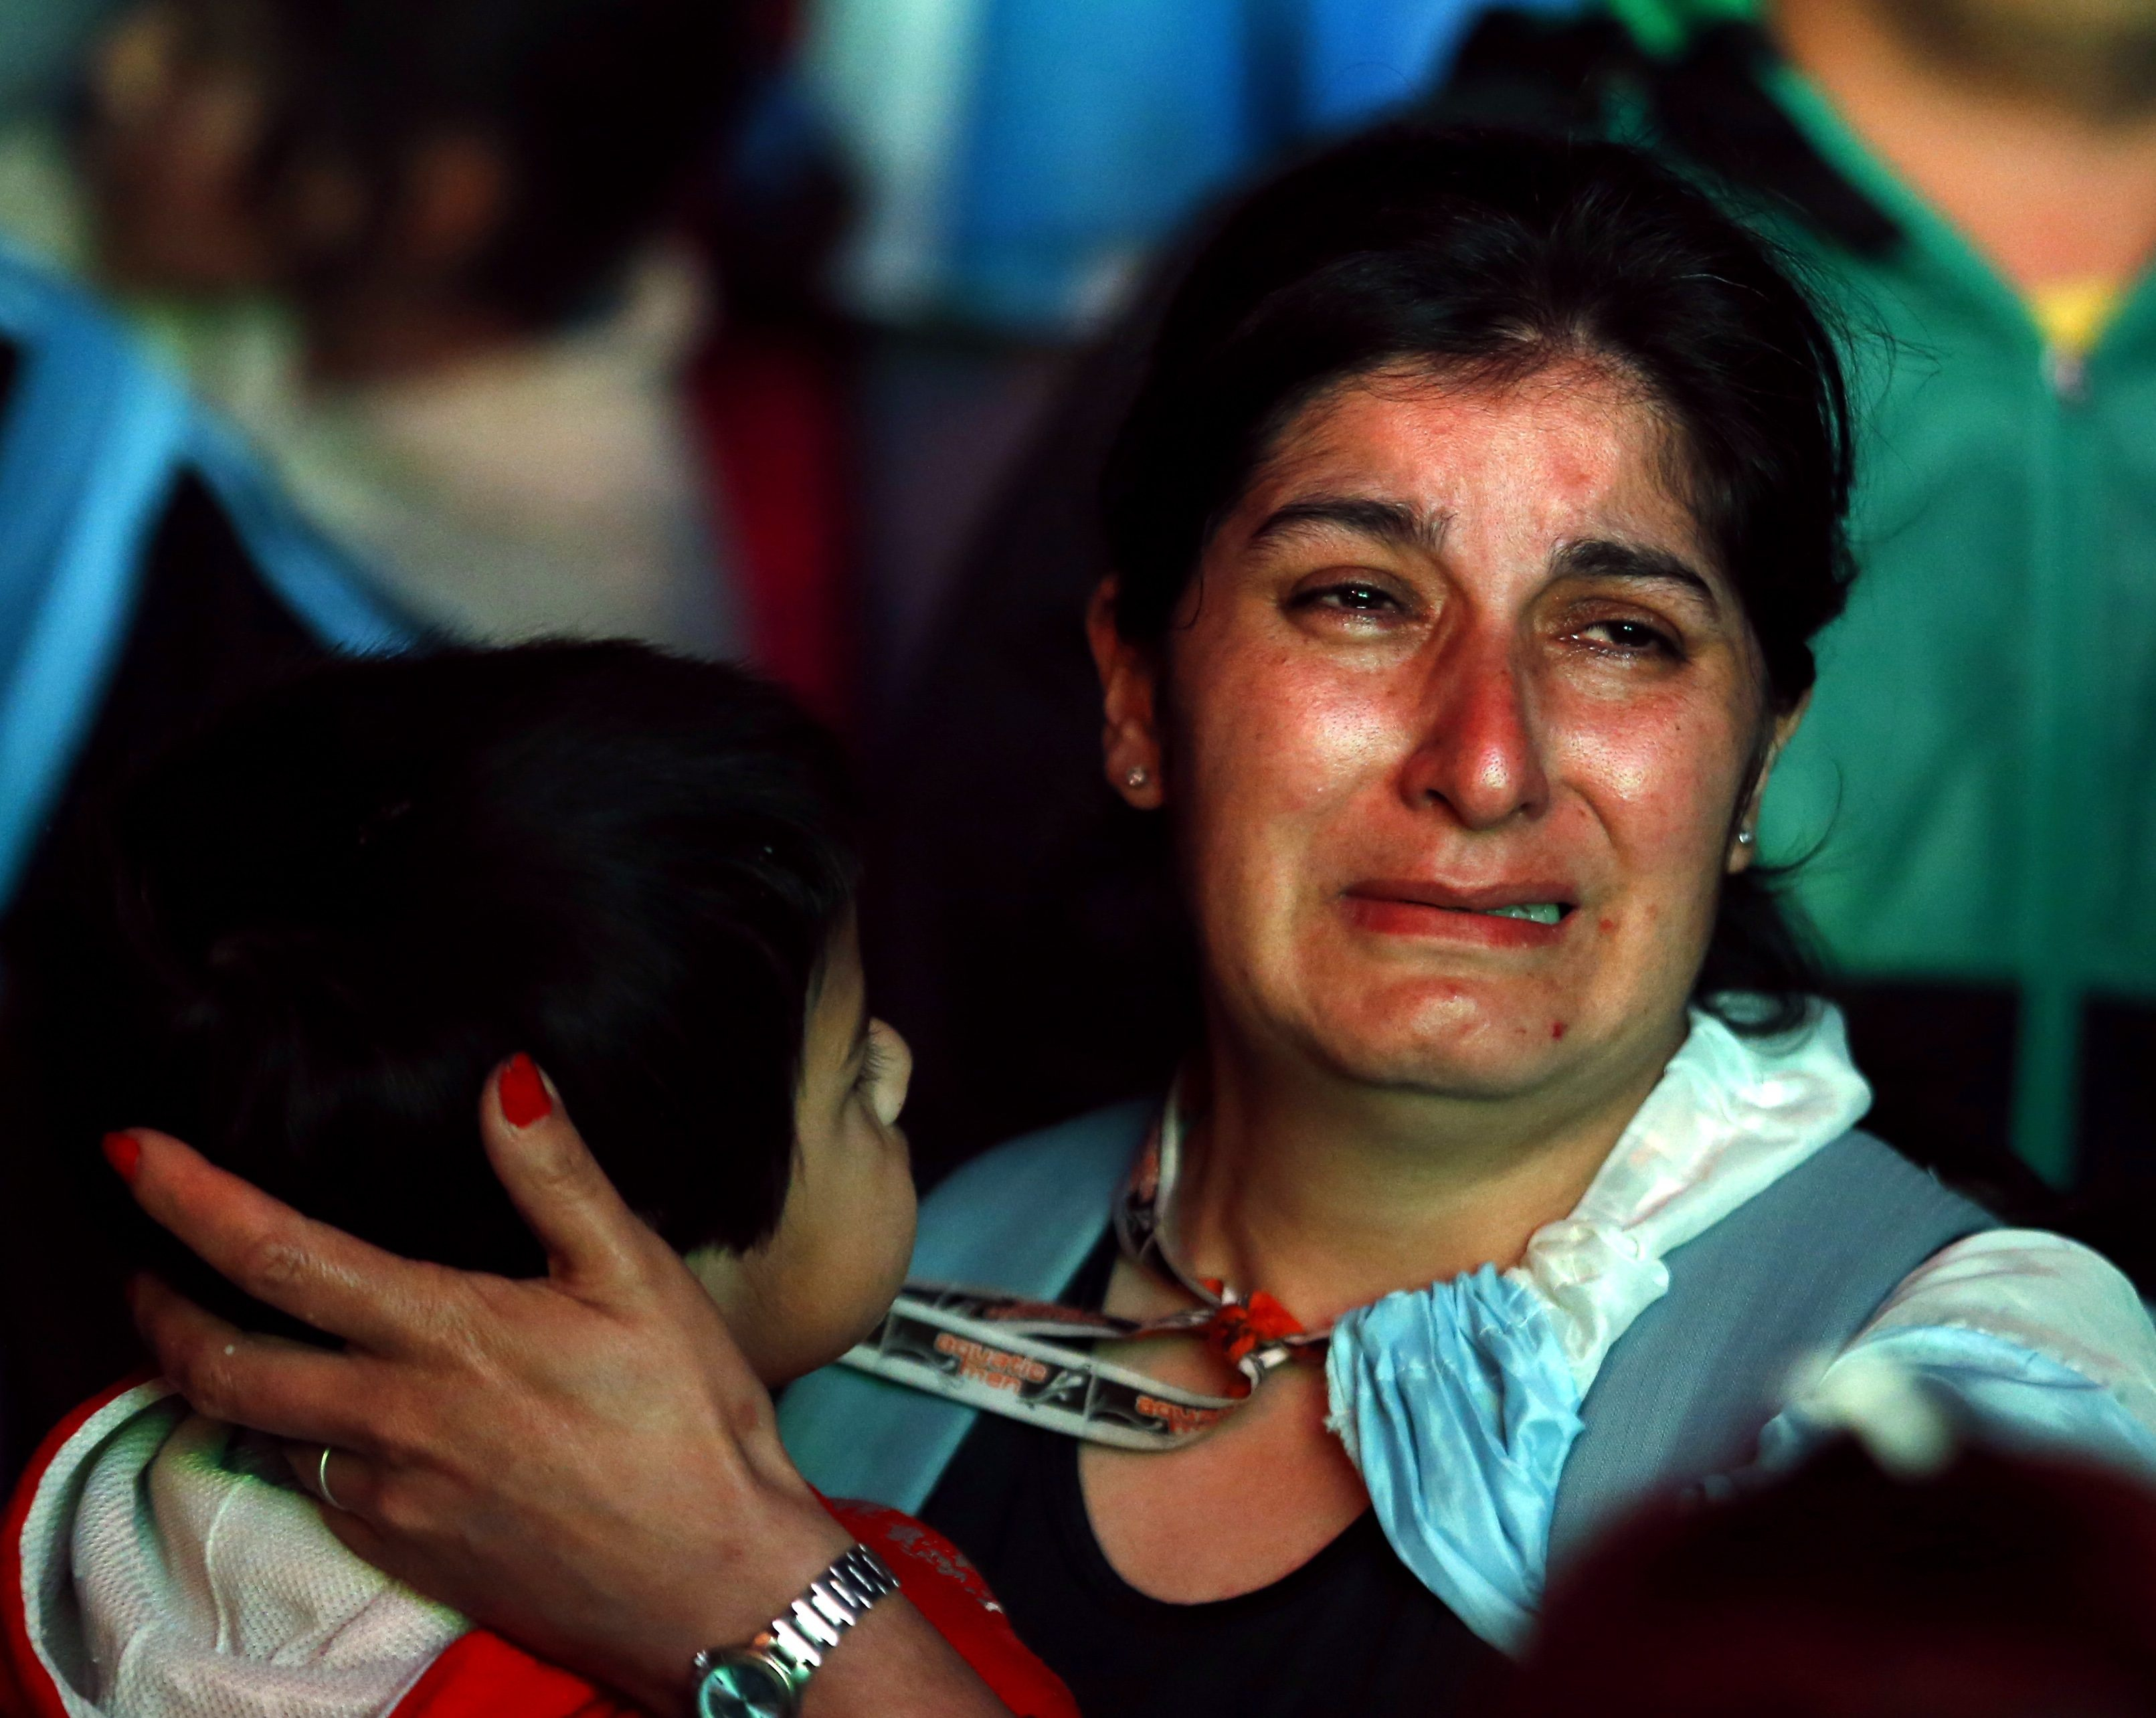 An Argentina fan reacts after Argentina lost to Germany in their 2014 World Cup final soccer match in Brazil, at a public square viewing area in Buenos Aires. Reuters